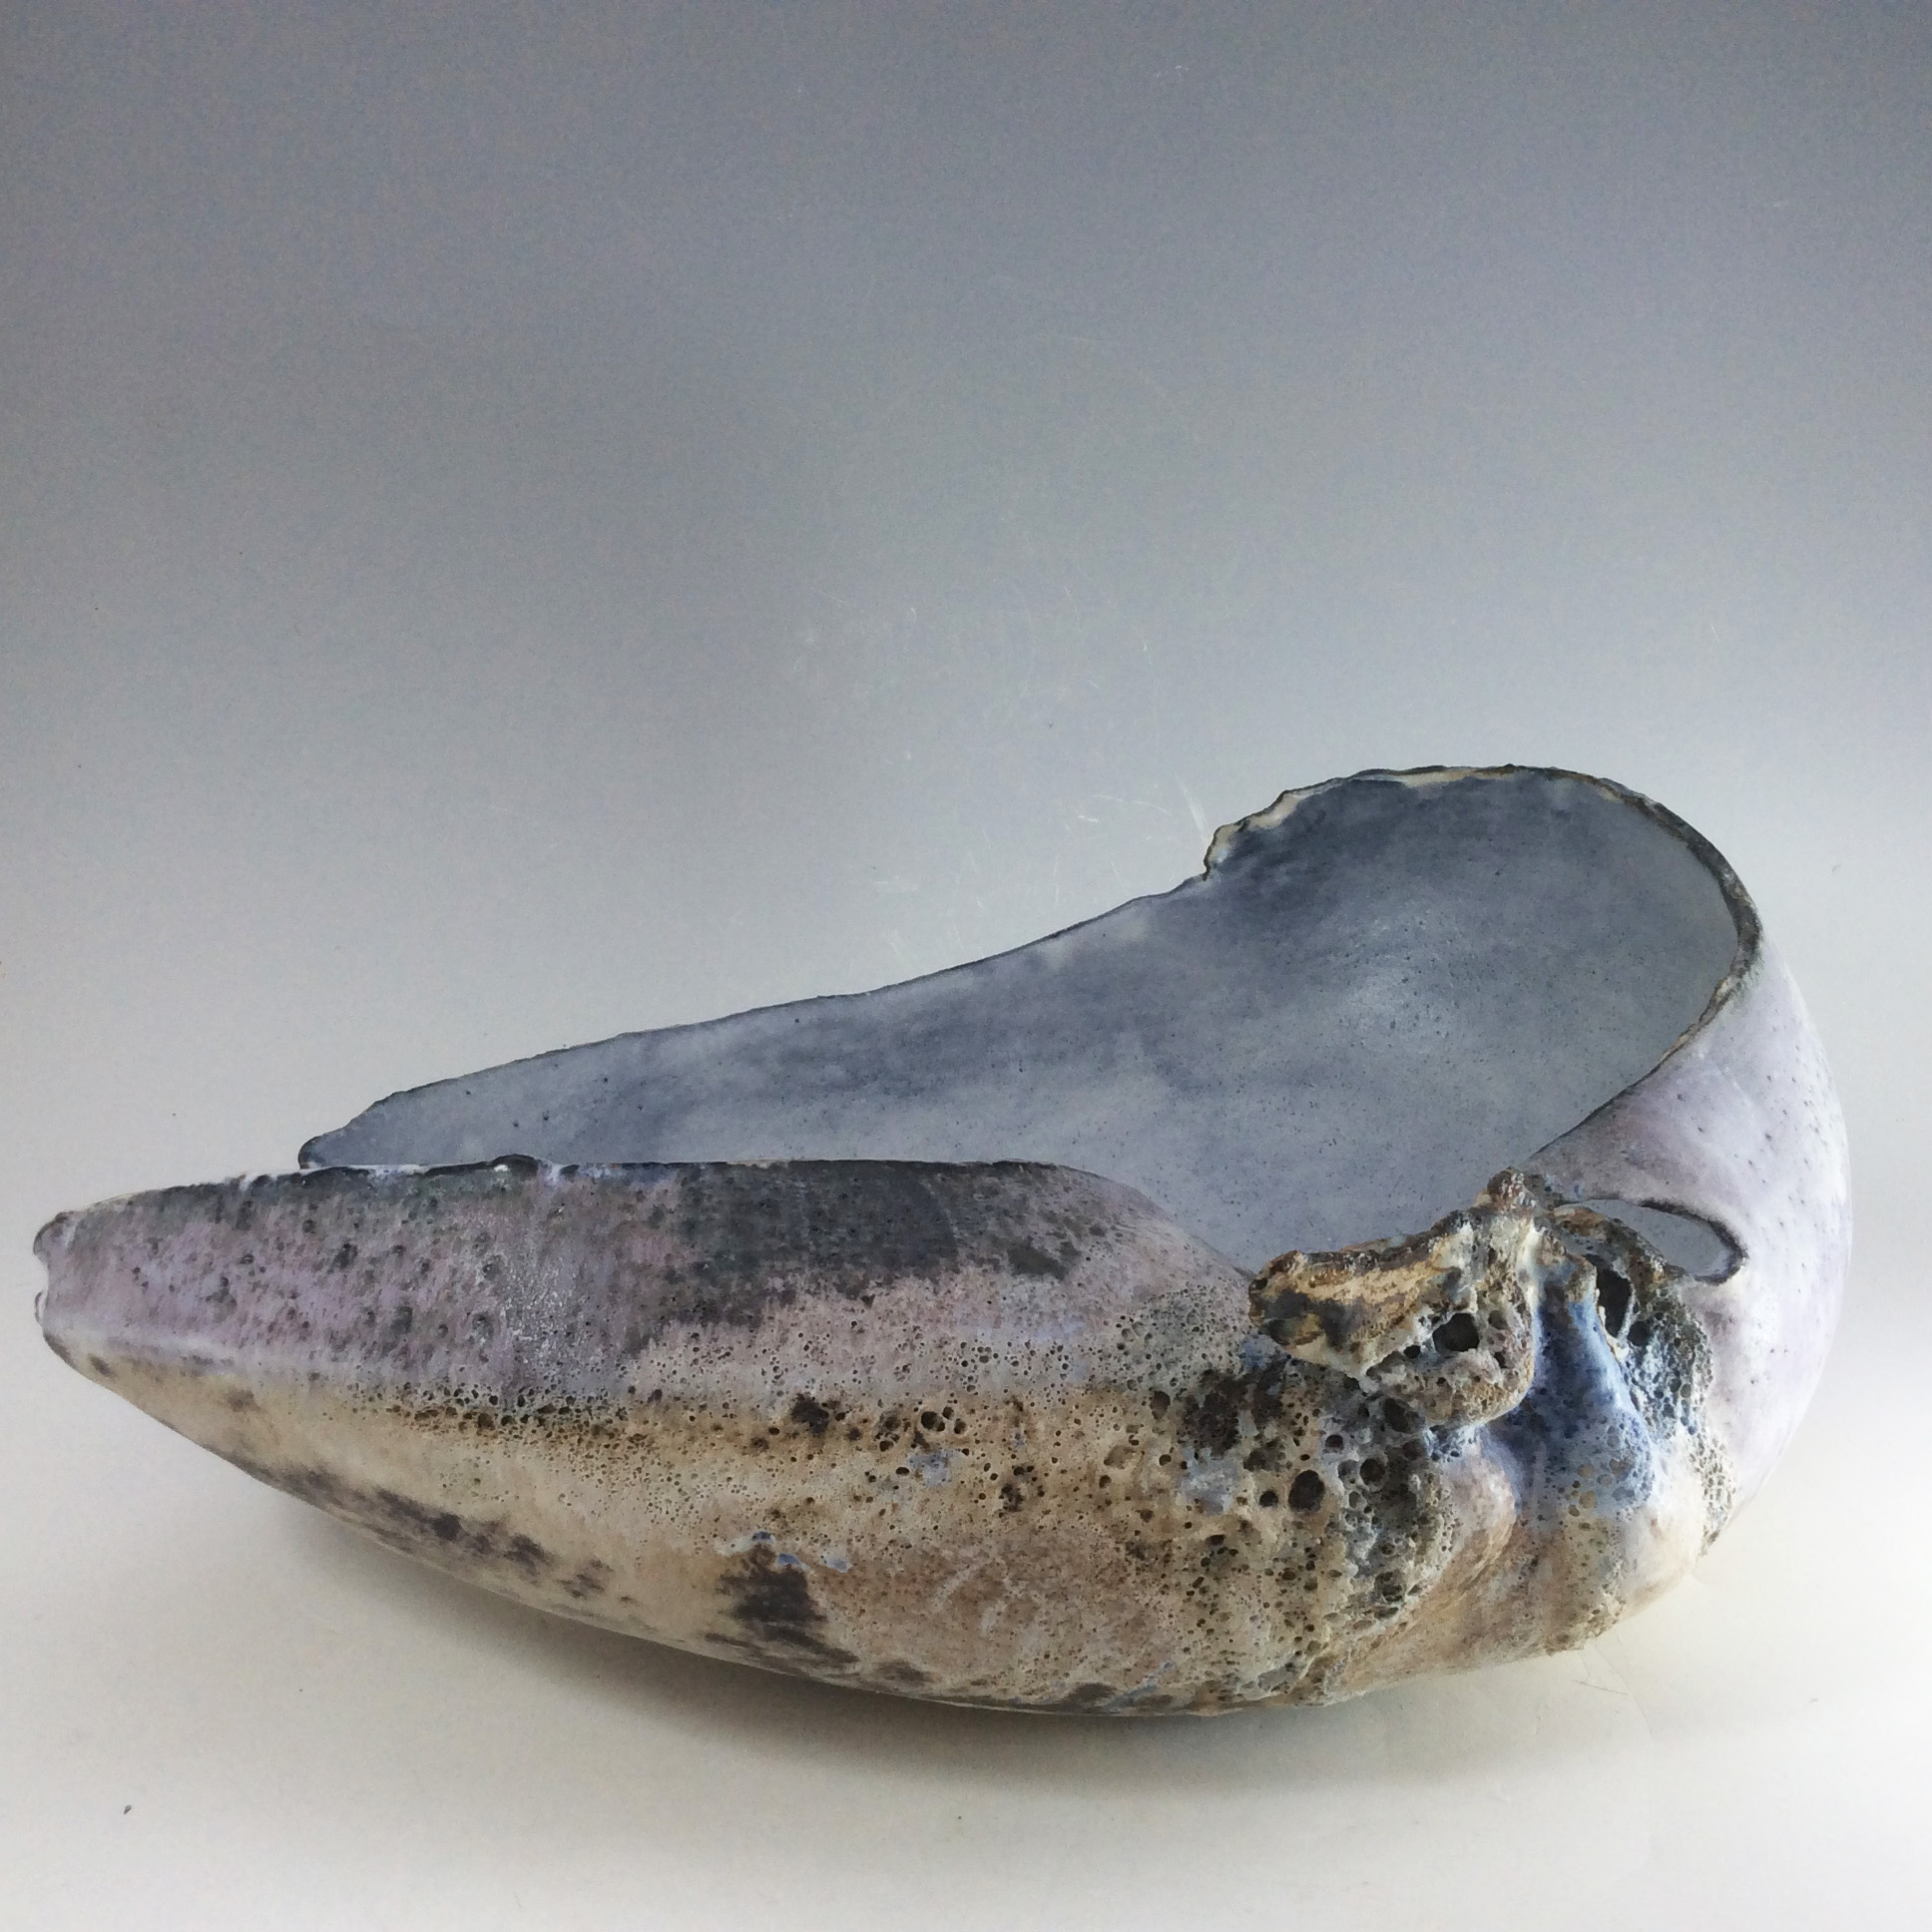 Shell with grey/blue interior